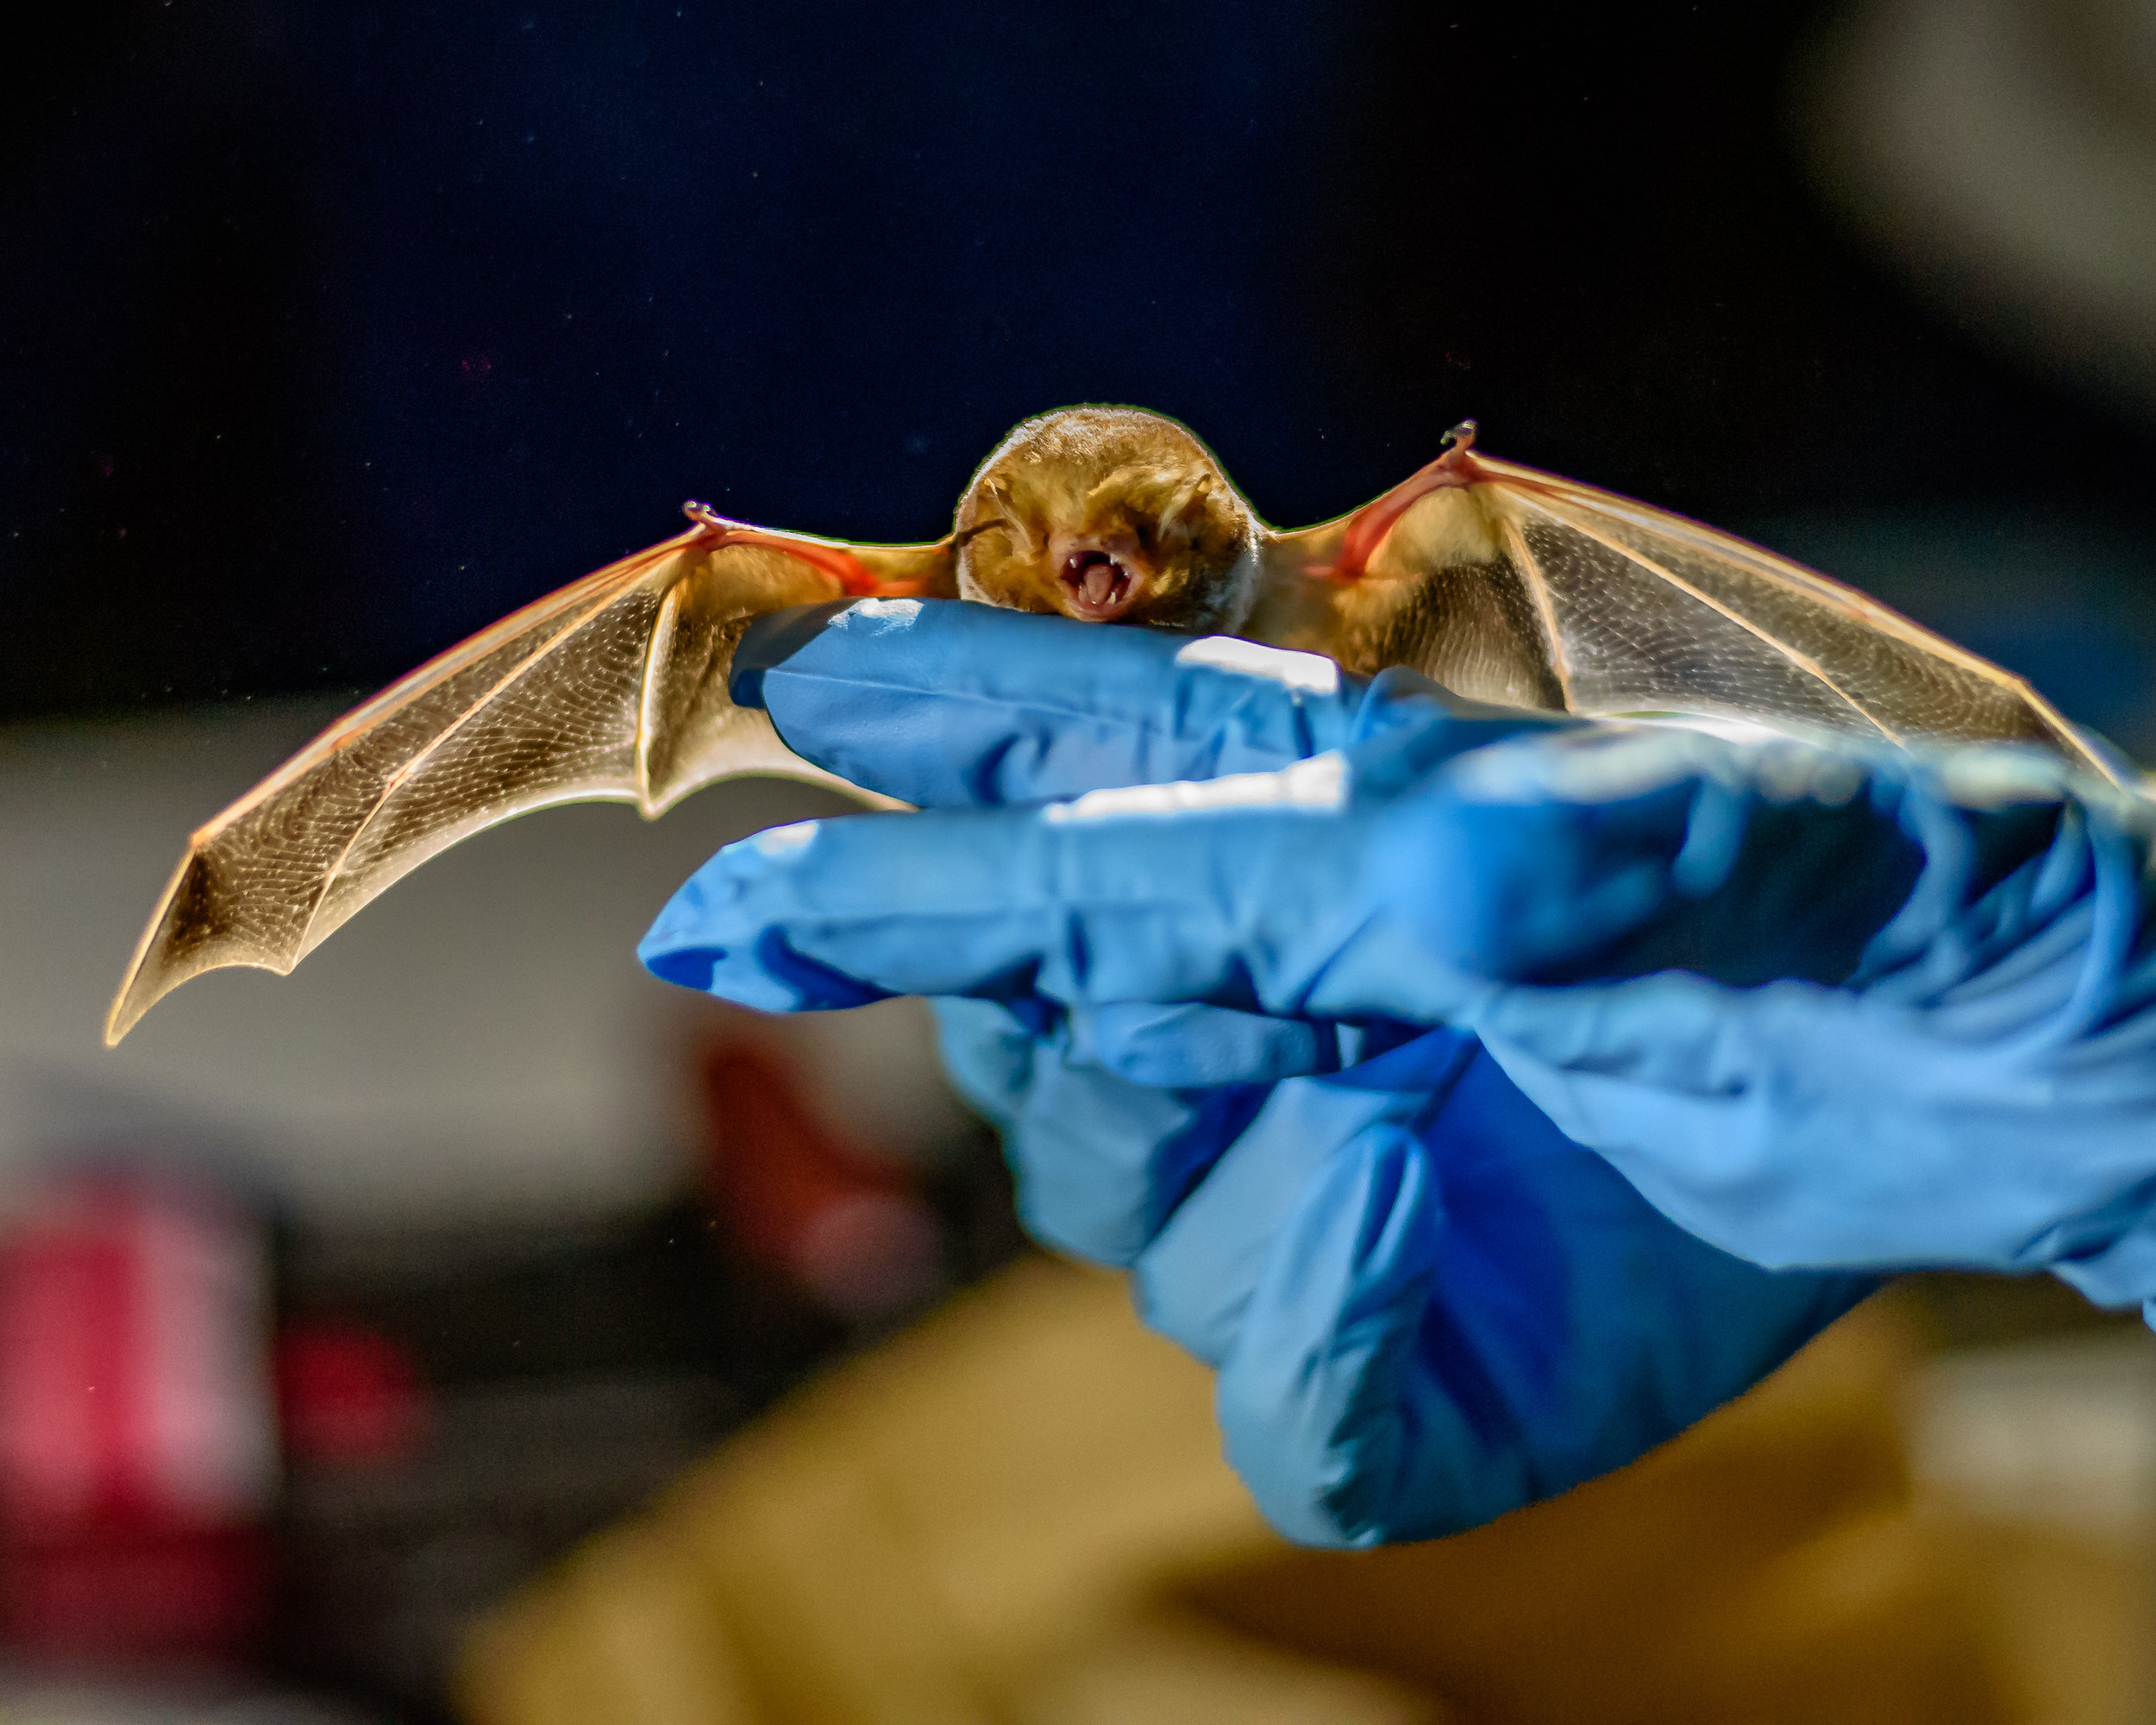 Participants were treated to up-close views of bats like this eastern red bat caught in mist-nets set up by researchers with the Illinois Bat Conservation Program. Photo by Rafi Wilkinson.